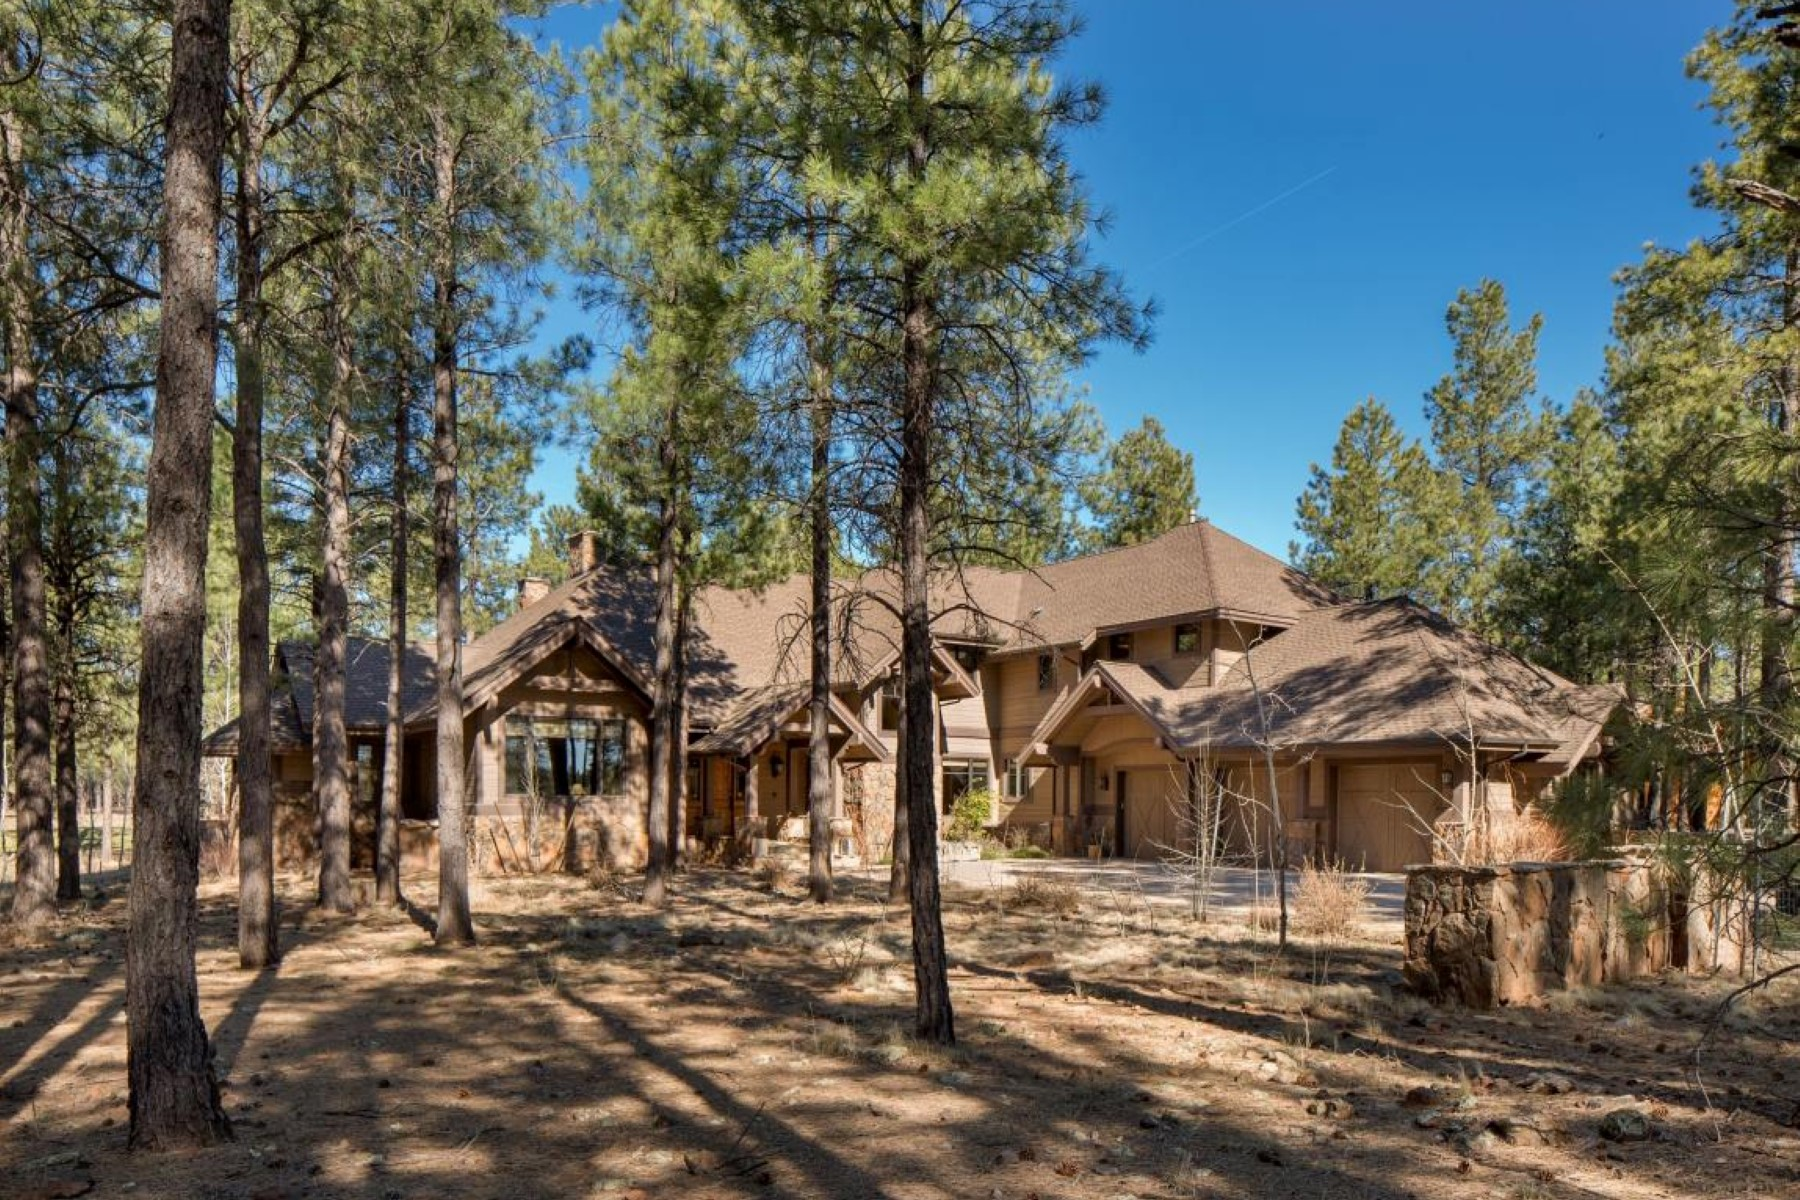 Single Family Home for Sale at Custom Craftsman Estate nestled into the Meadows at Forest Highlands Golf Club 1576 Bessie Kidd Best Flagstaff, Arizona, 86005 United States